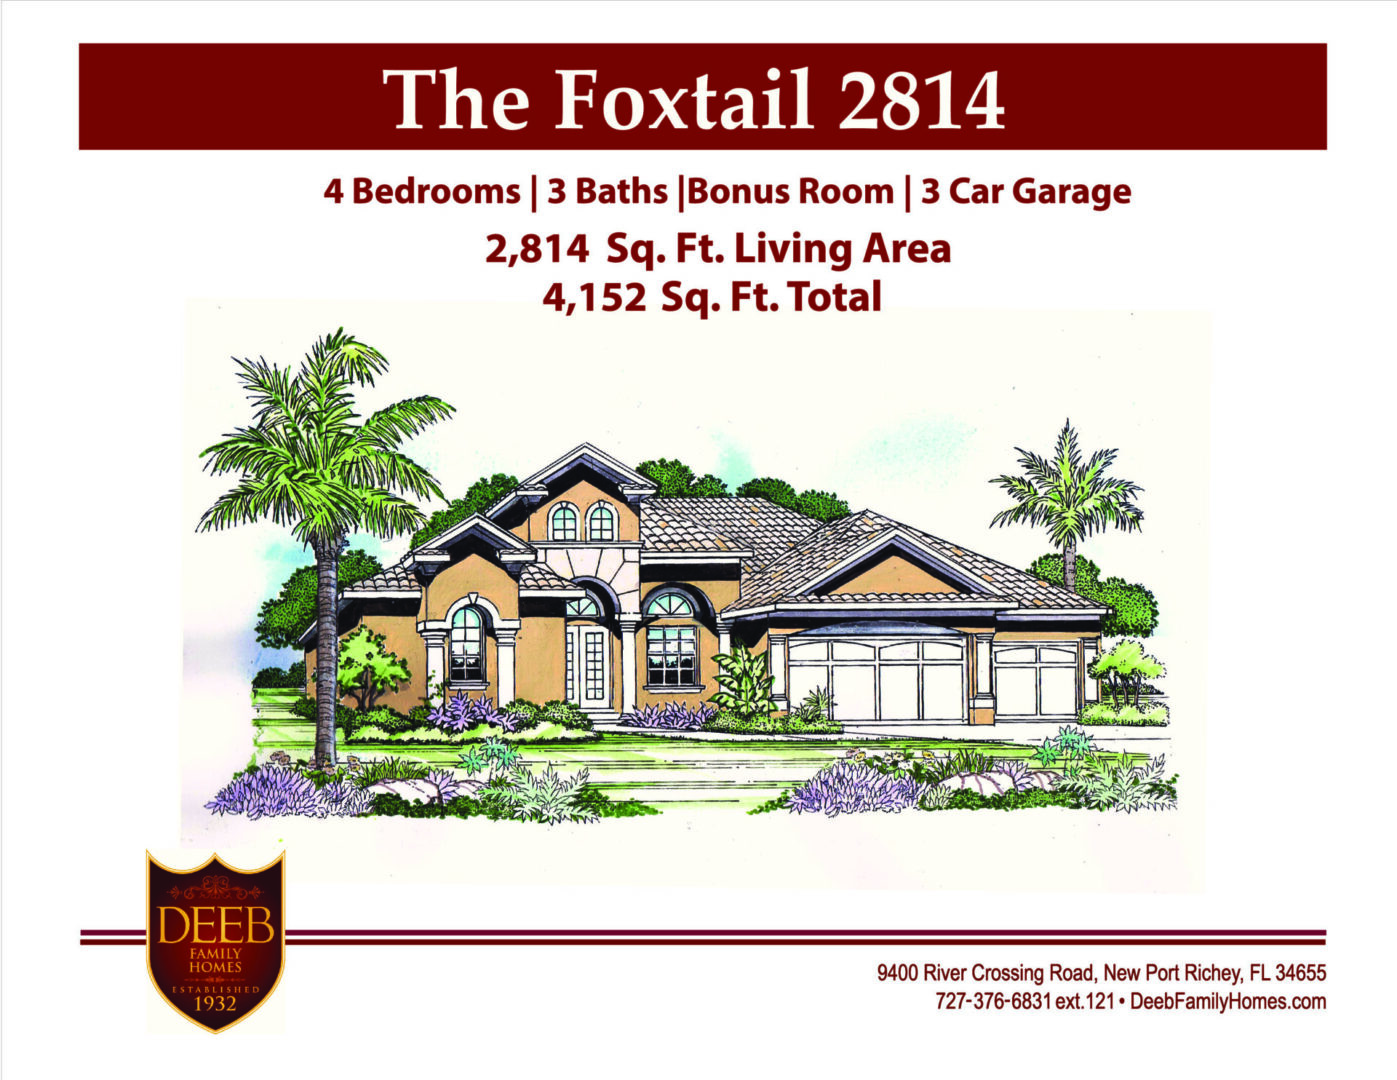 Foxtail 2814 Front elevation